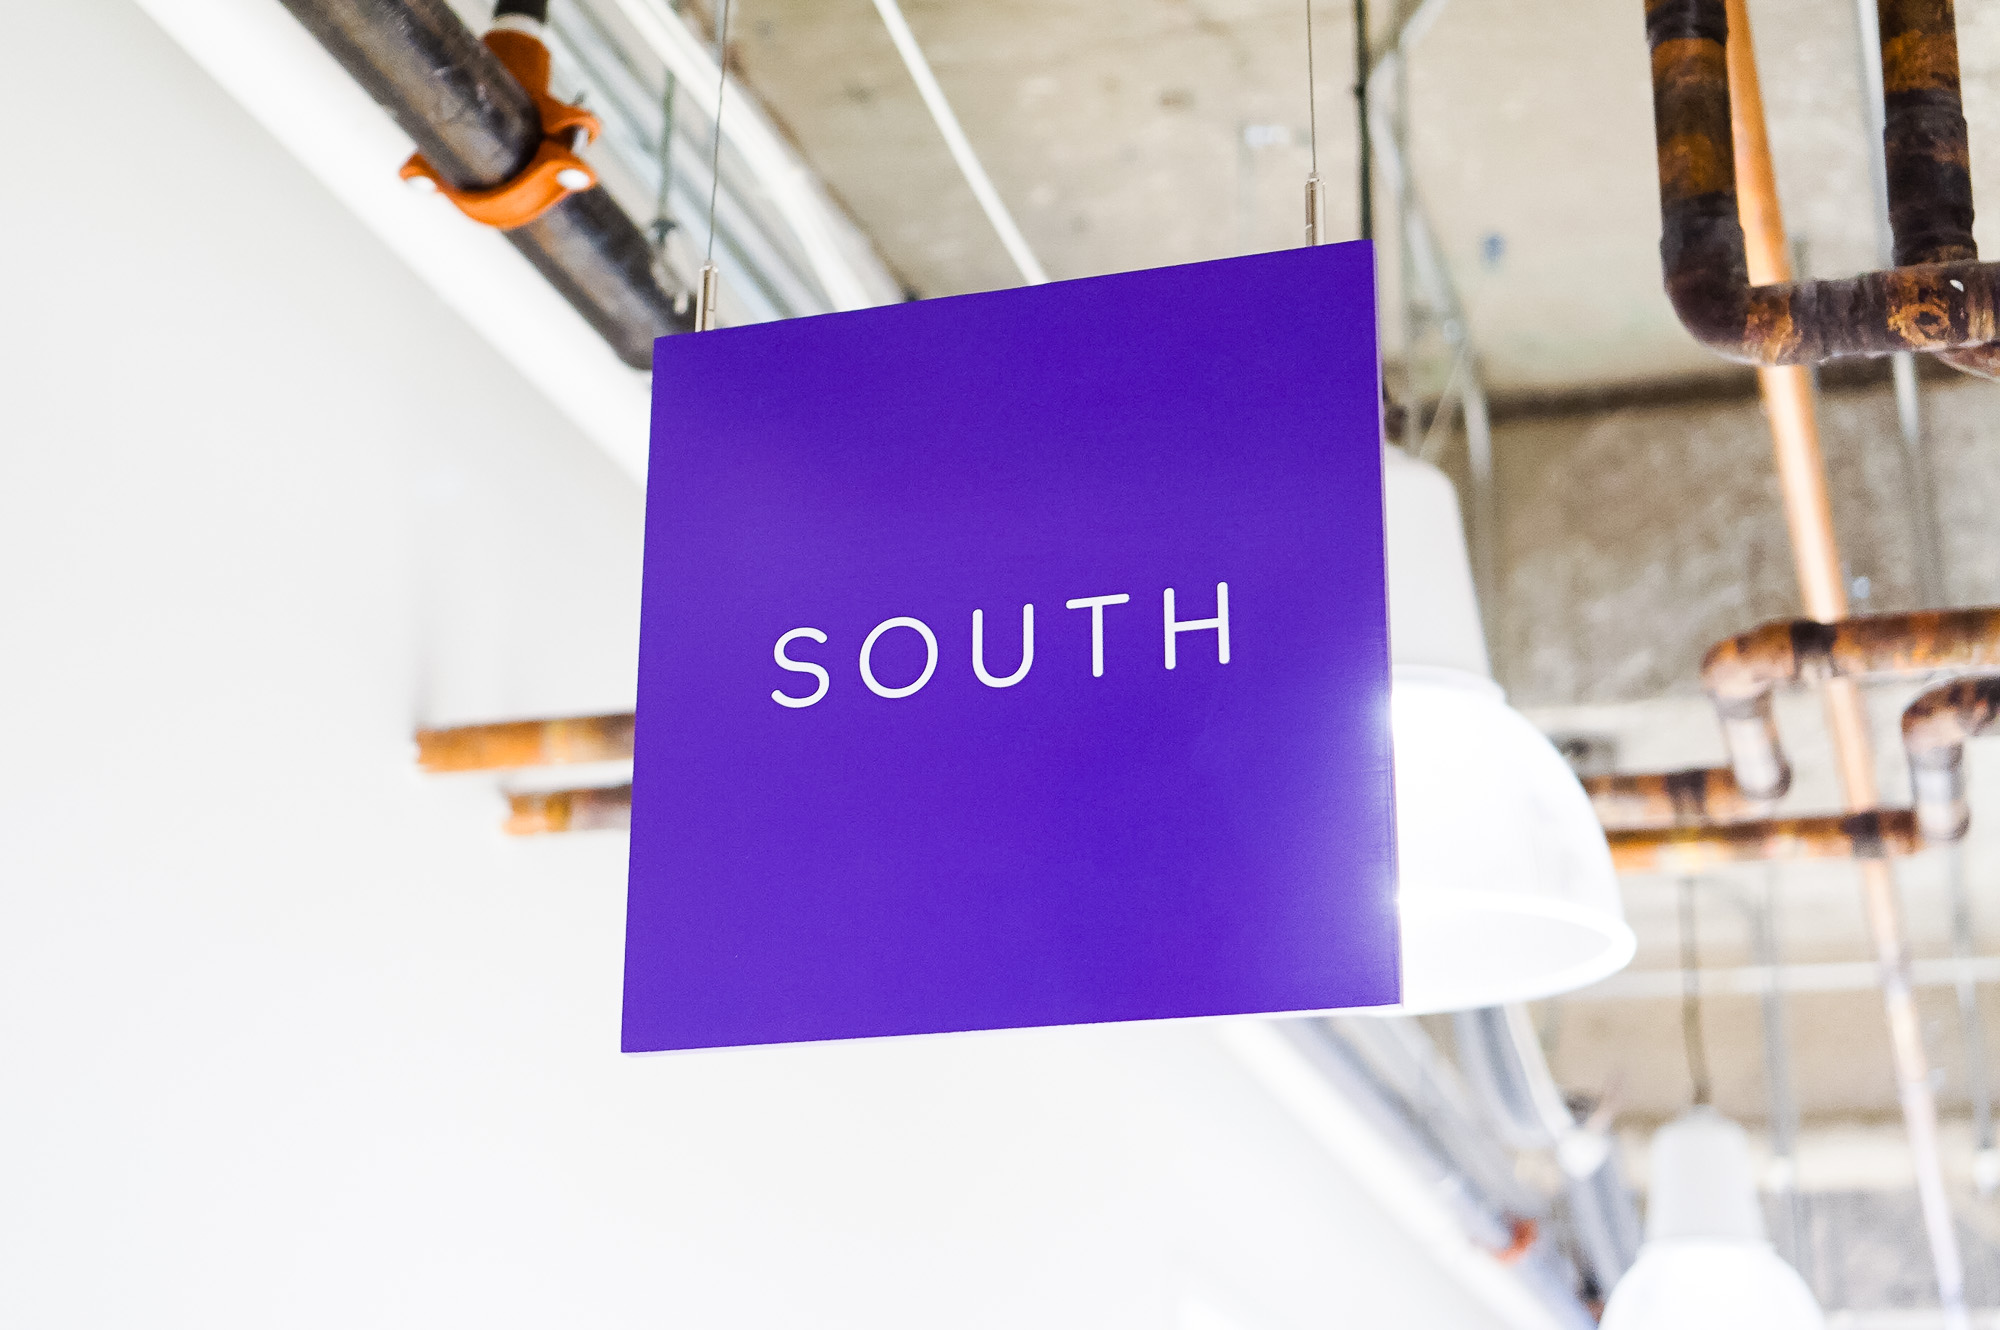 Minimal, multi-colored north, south, east, and west suspended directional signs for Scale, a San Francisco based company delivering high quality training data for AI applications such as self-driving cars, mapping, AR/VR, robotics, and more.